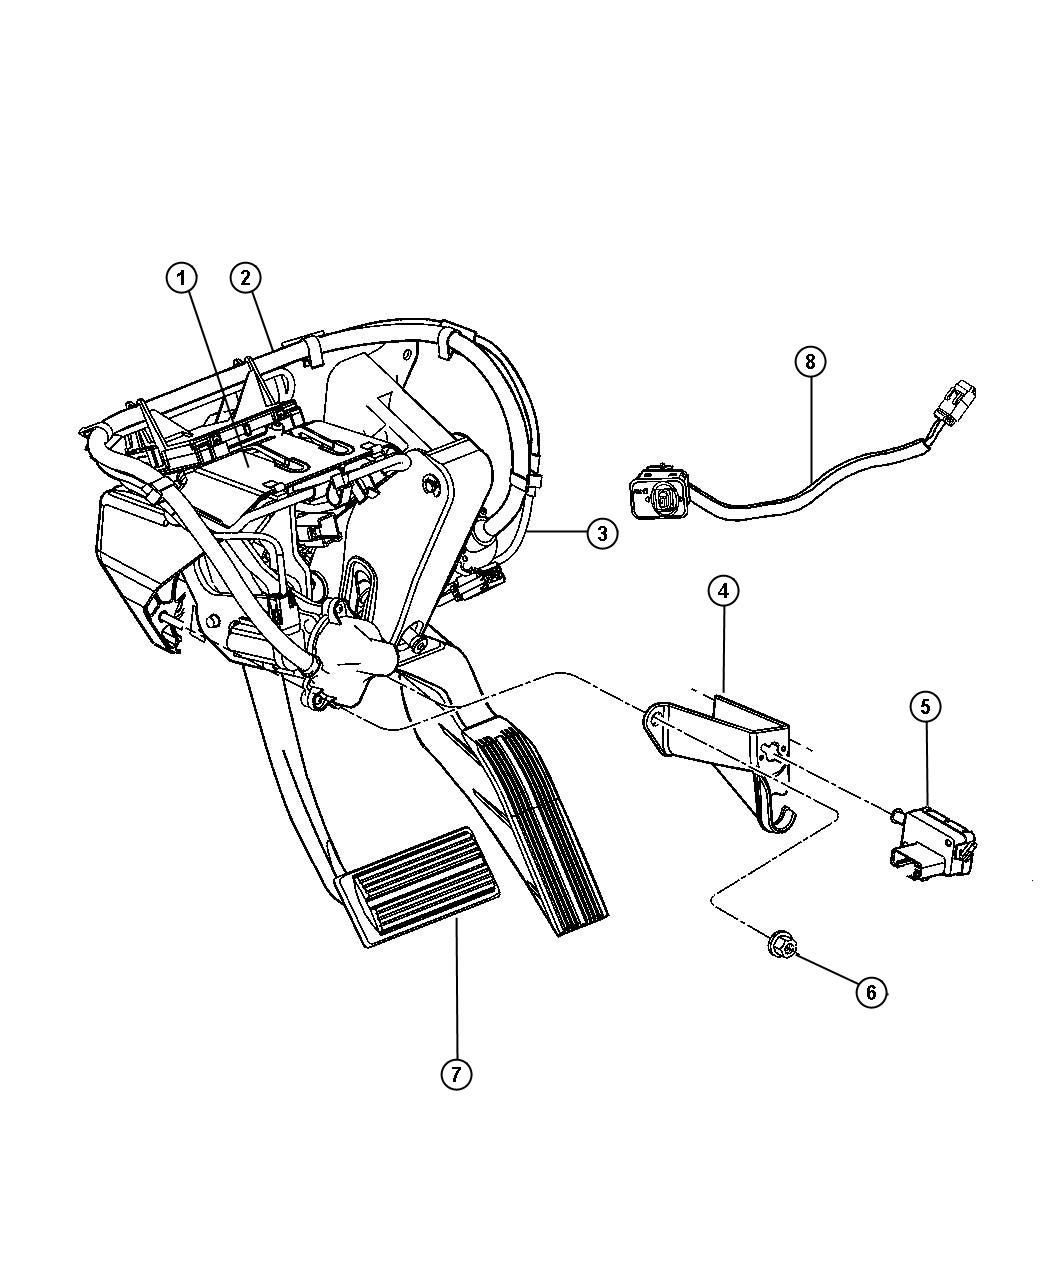 Pedal Brake Power Adjustable